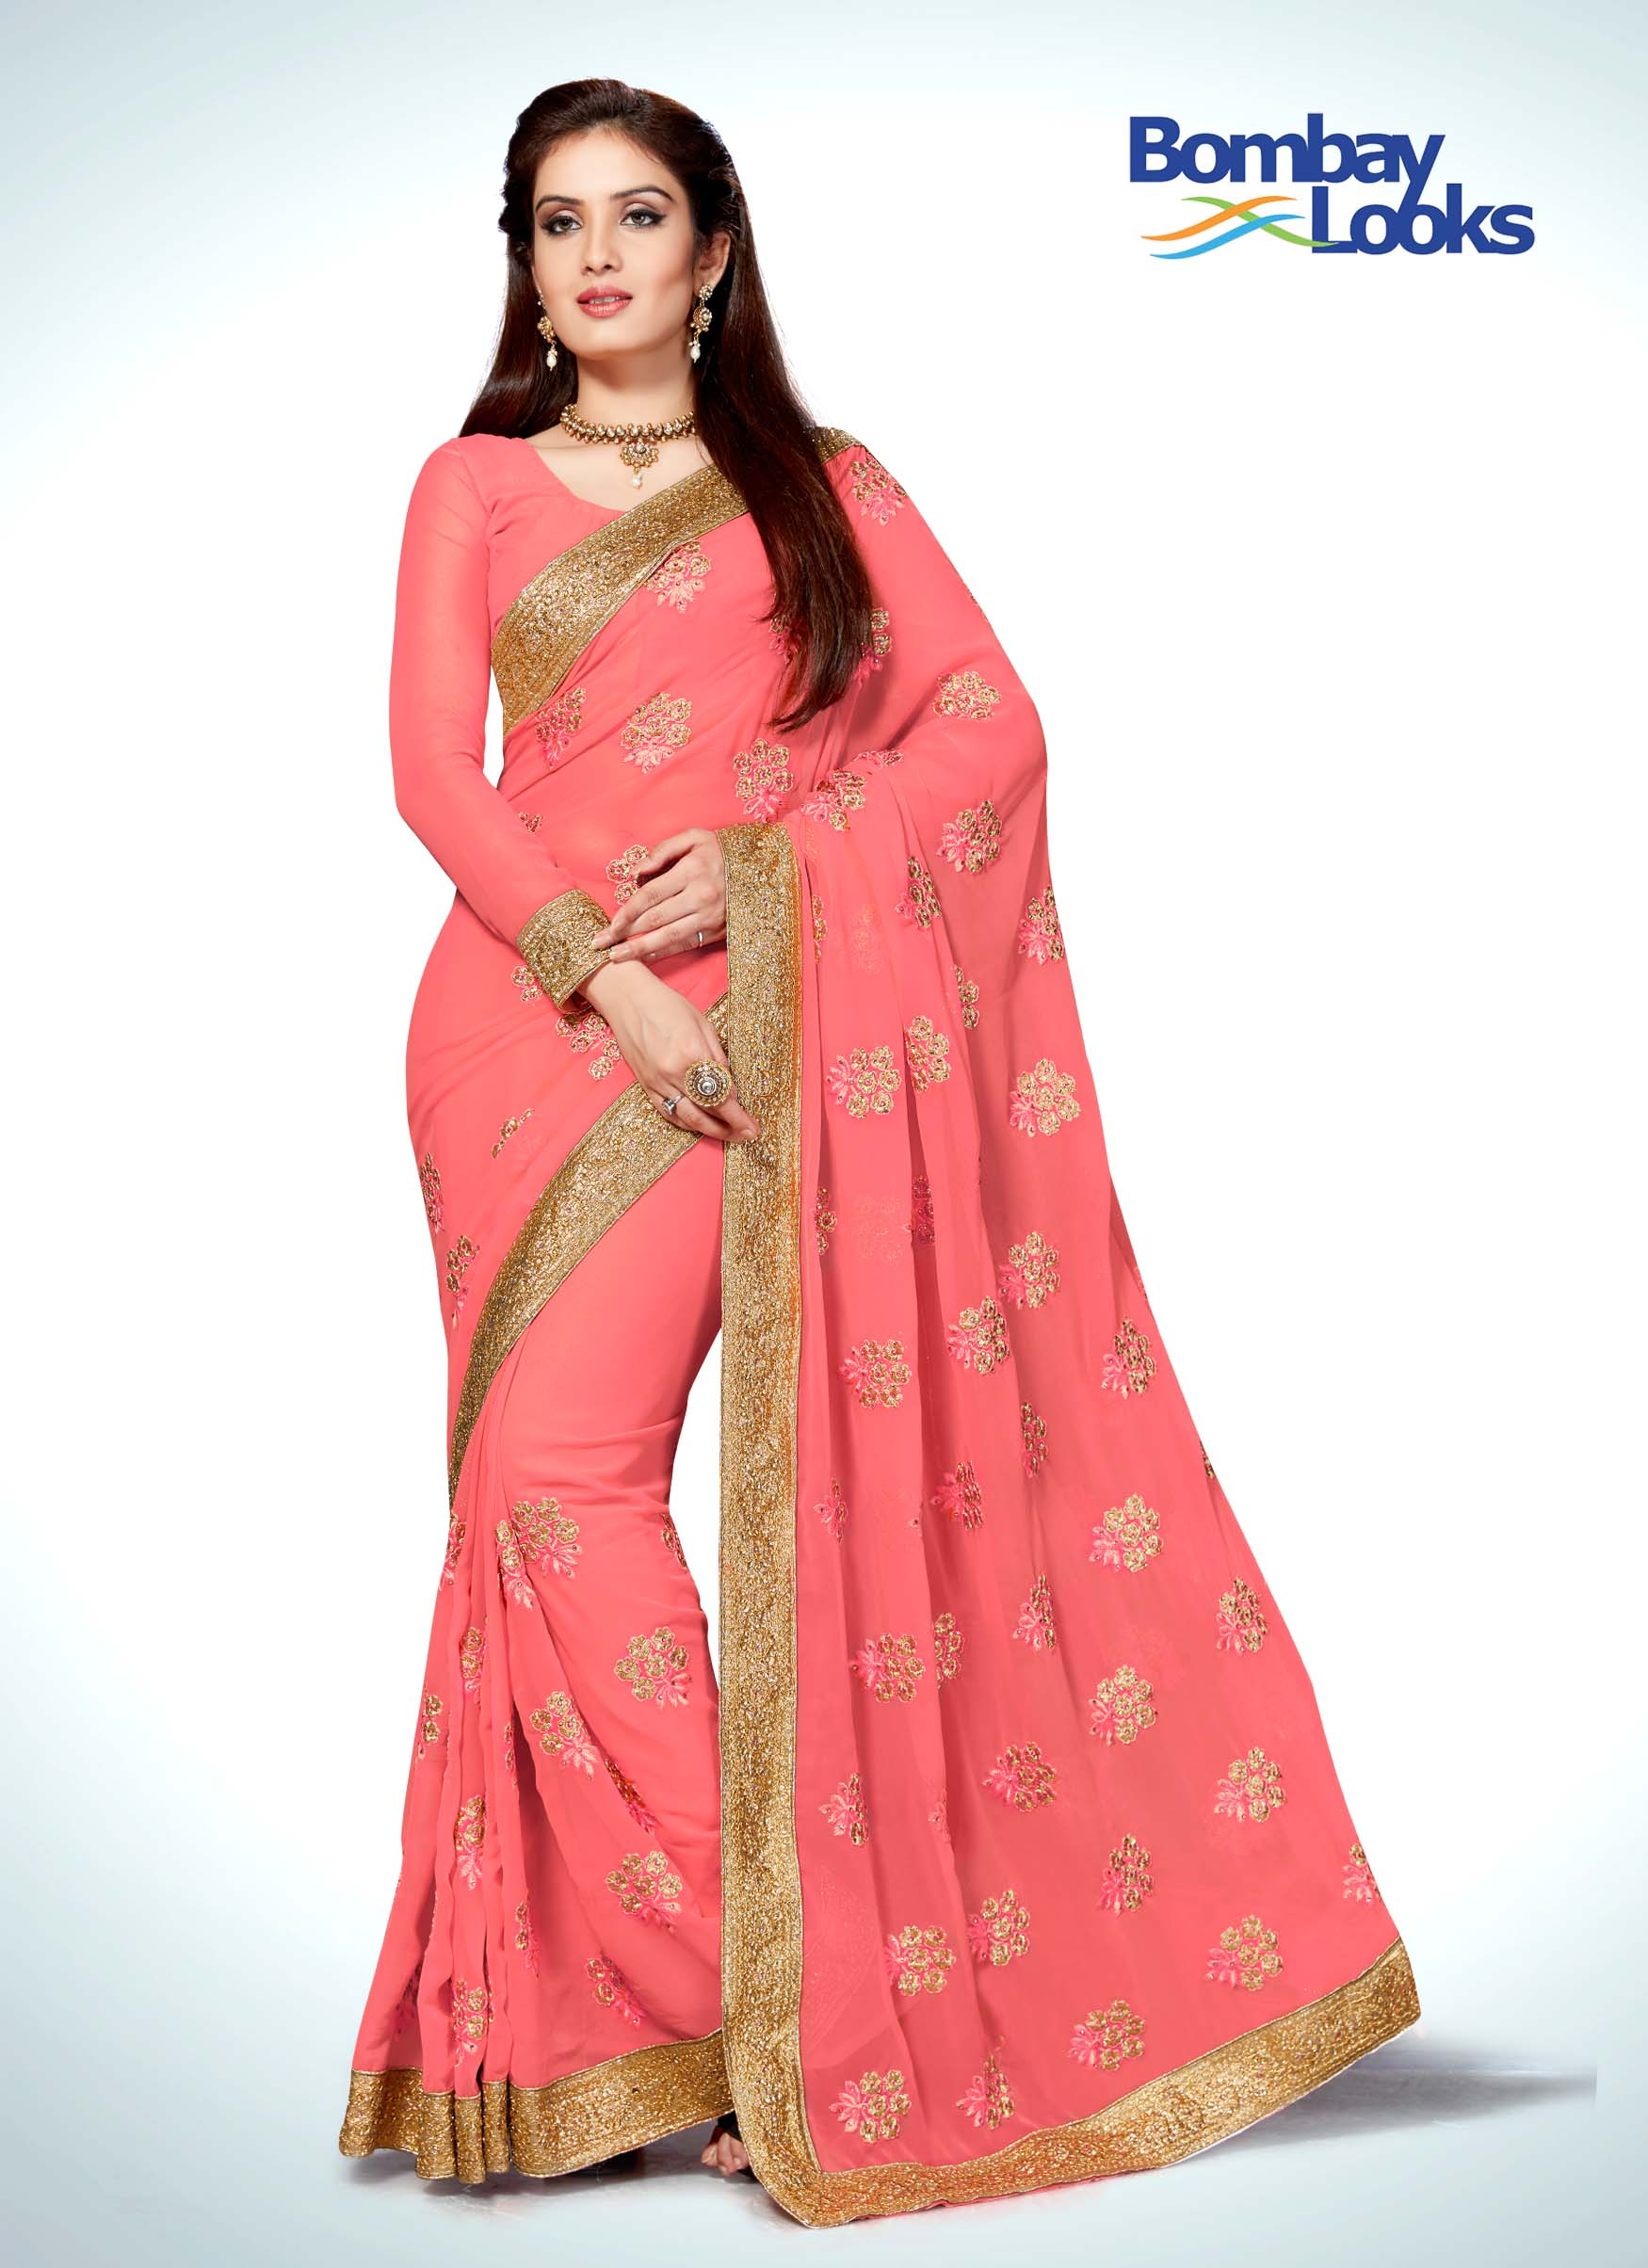 Gorgeous rose coloured chiffon saree with gold border